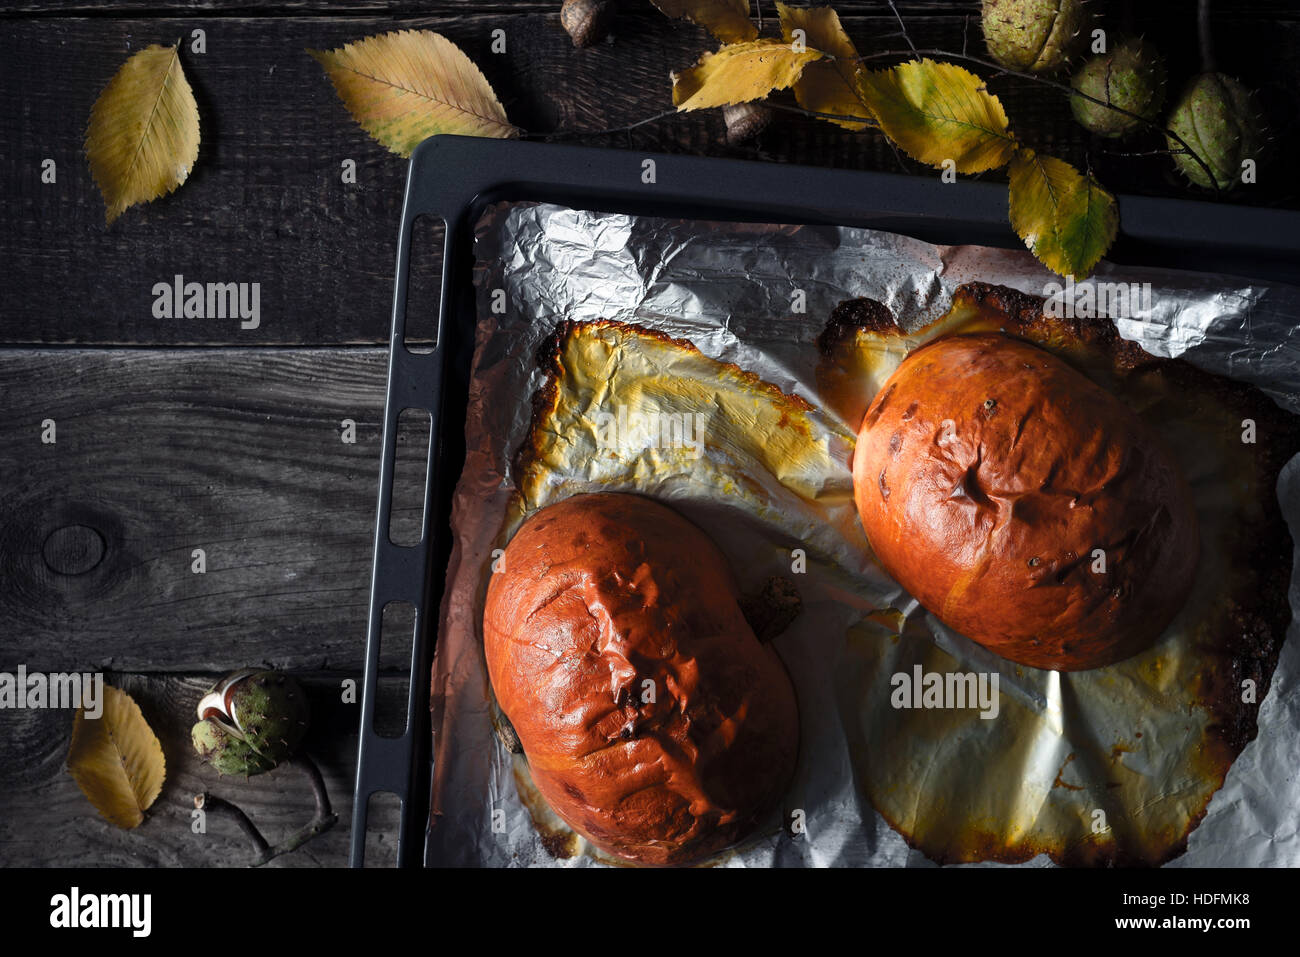 Halves of baked pumpkin on the baking tray on the wooden table top view - Stock Image